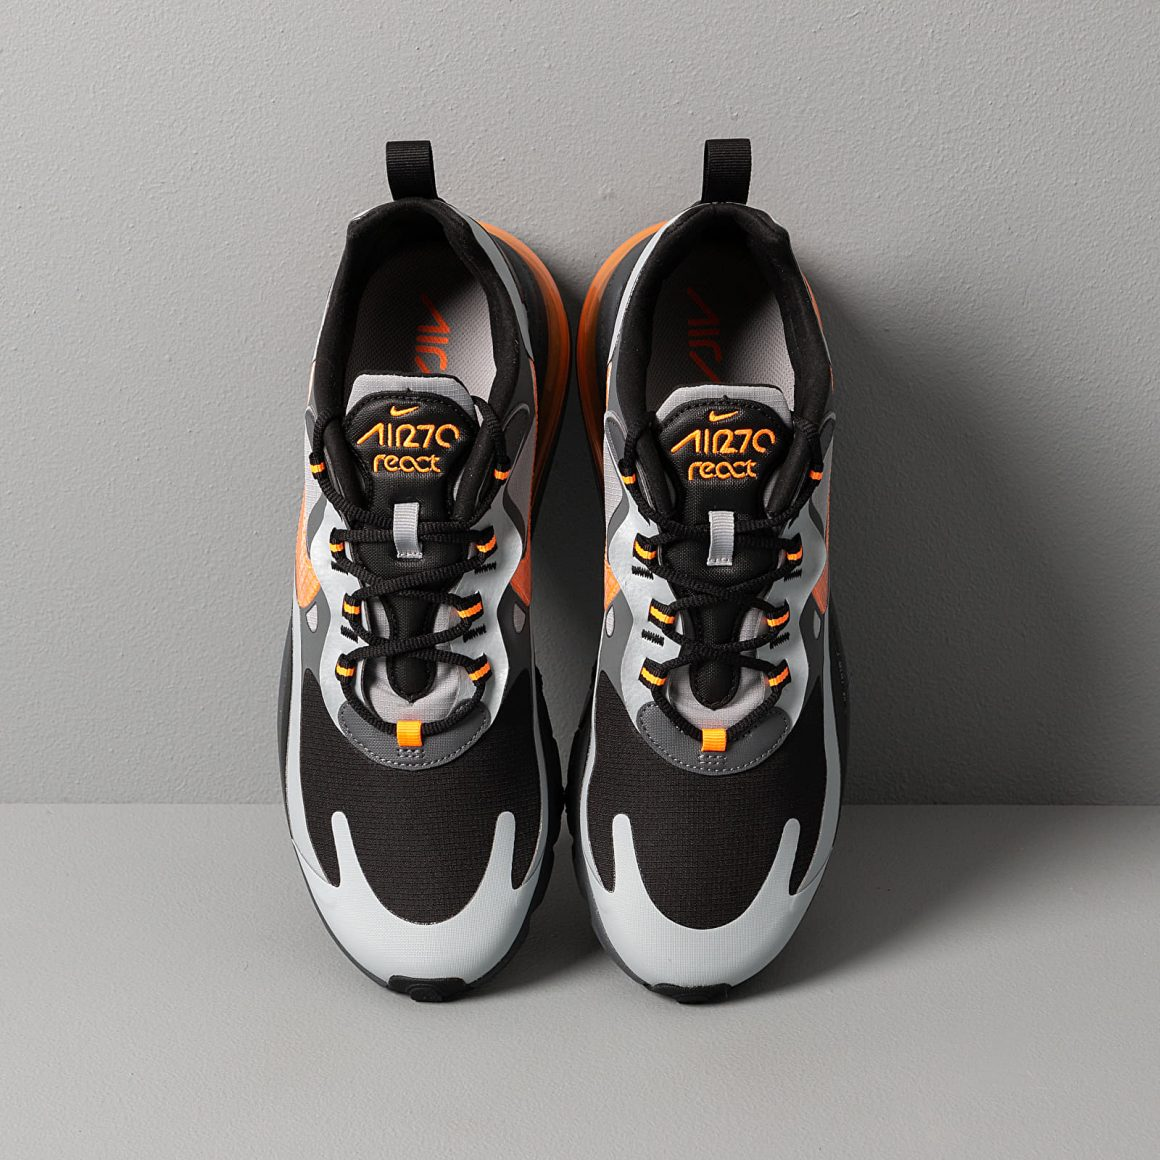 Nike Air Max 270 React Winter ''Wolf Grey'' Sneaker Style